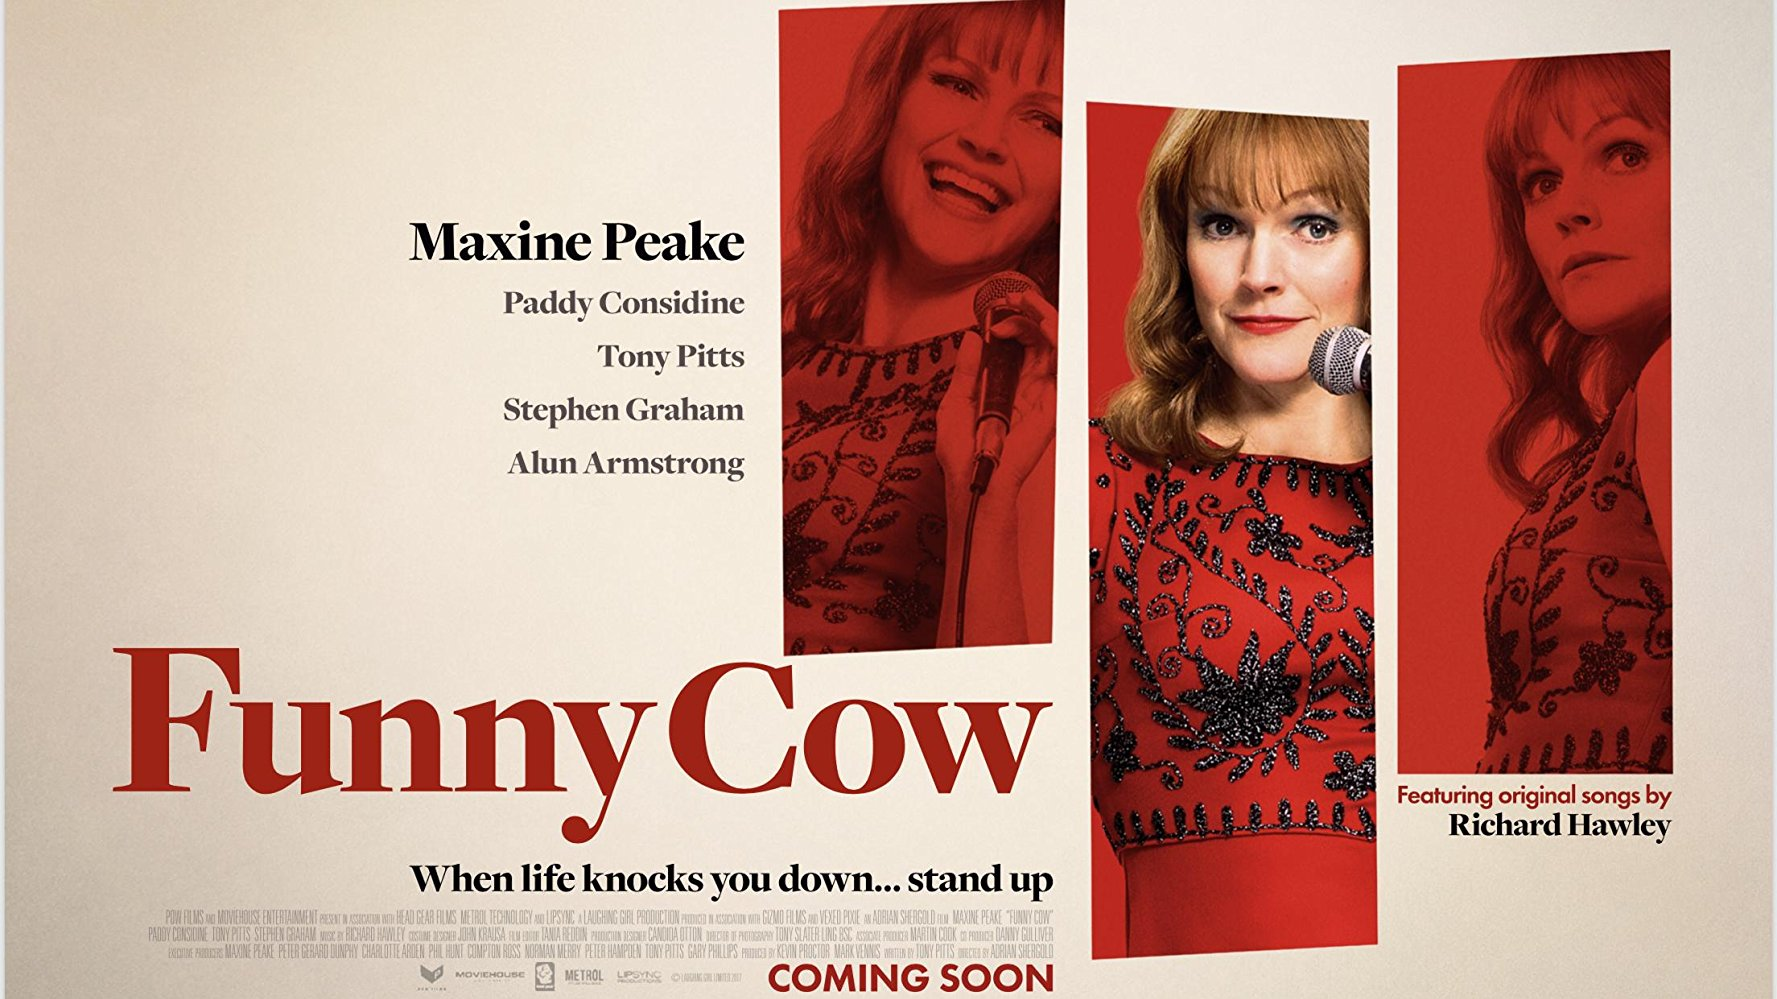 Here's the official trailer of Funny Cow, the upcoming drama comedy movie  directed by Adrian Shergold based on a script Tony Pitts and starring  Maxine Peake ...